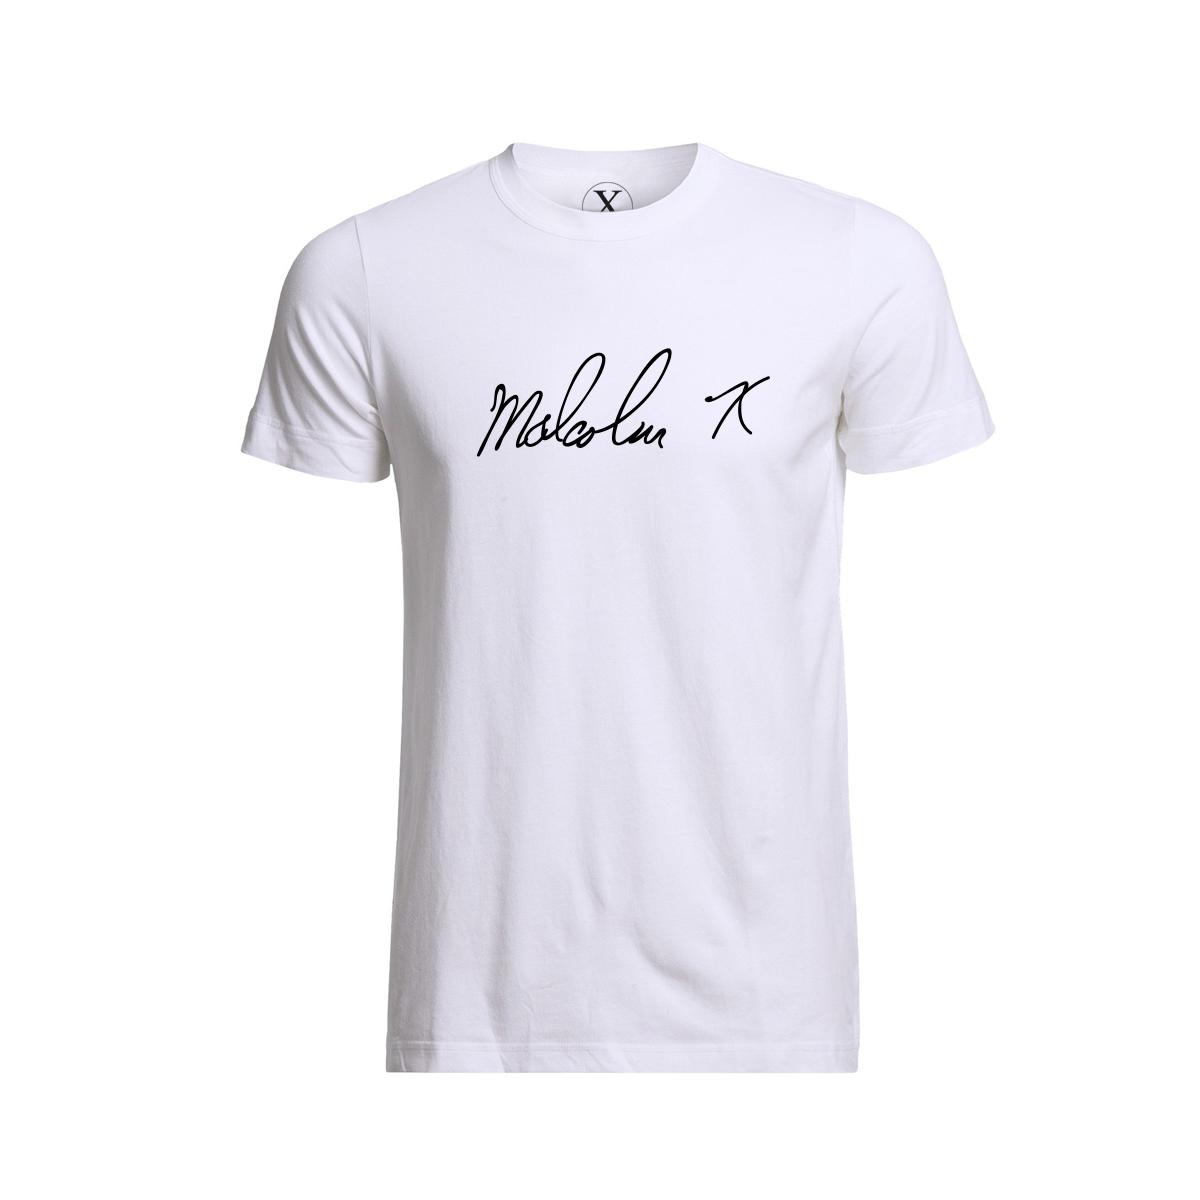 Malcolm X Signature T-Shirt [White]